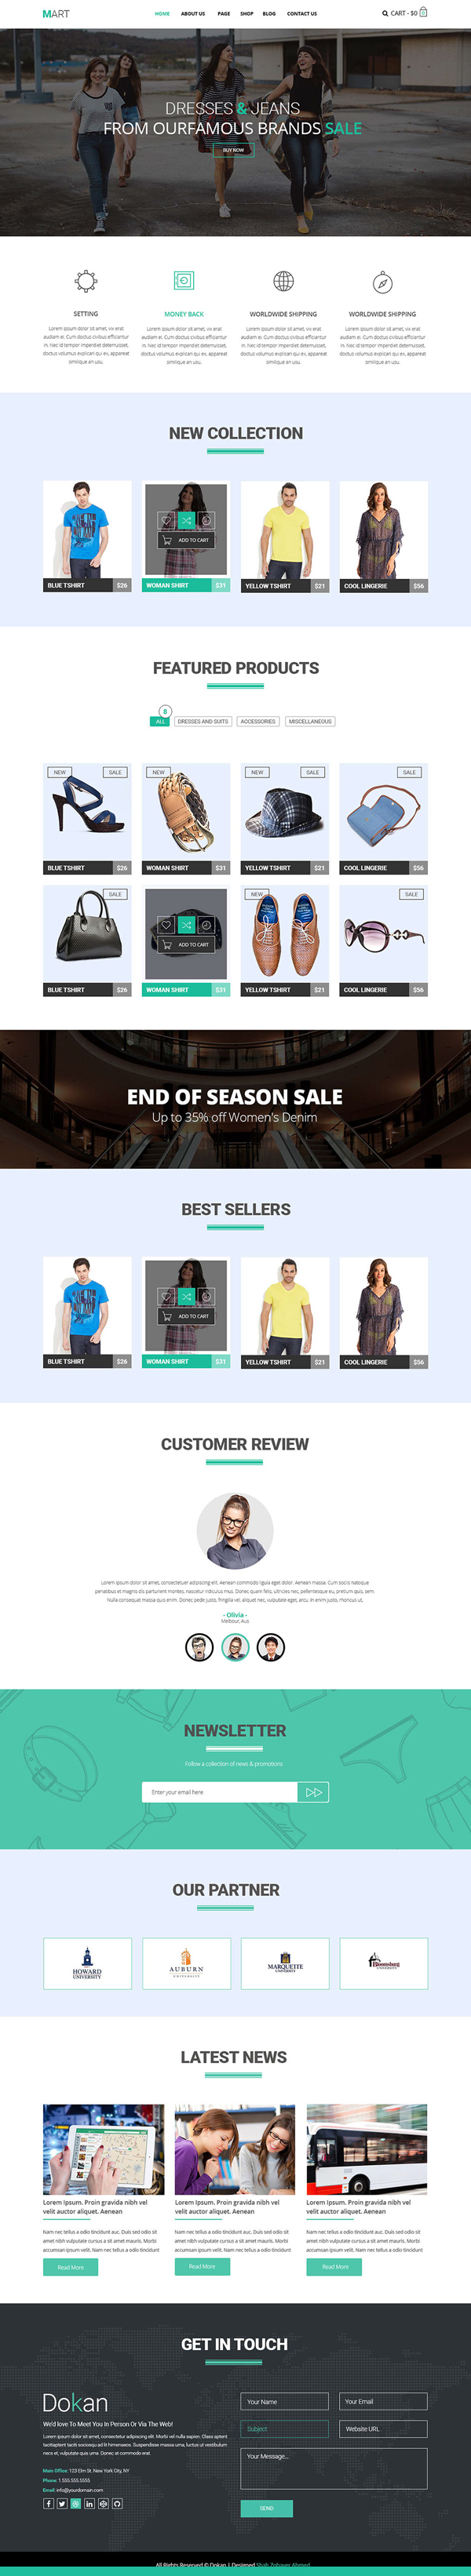 15 Free Responsive PSD Website Templates | Freebies | Graphic Design ...